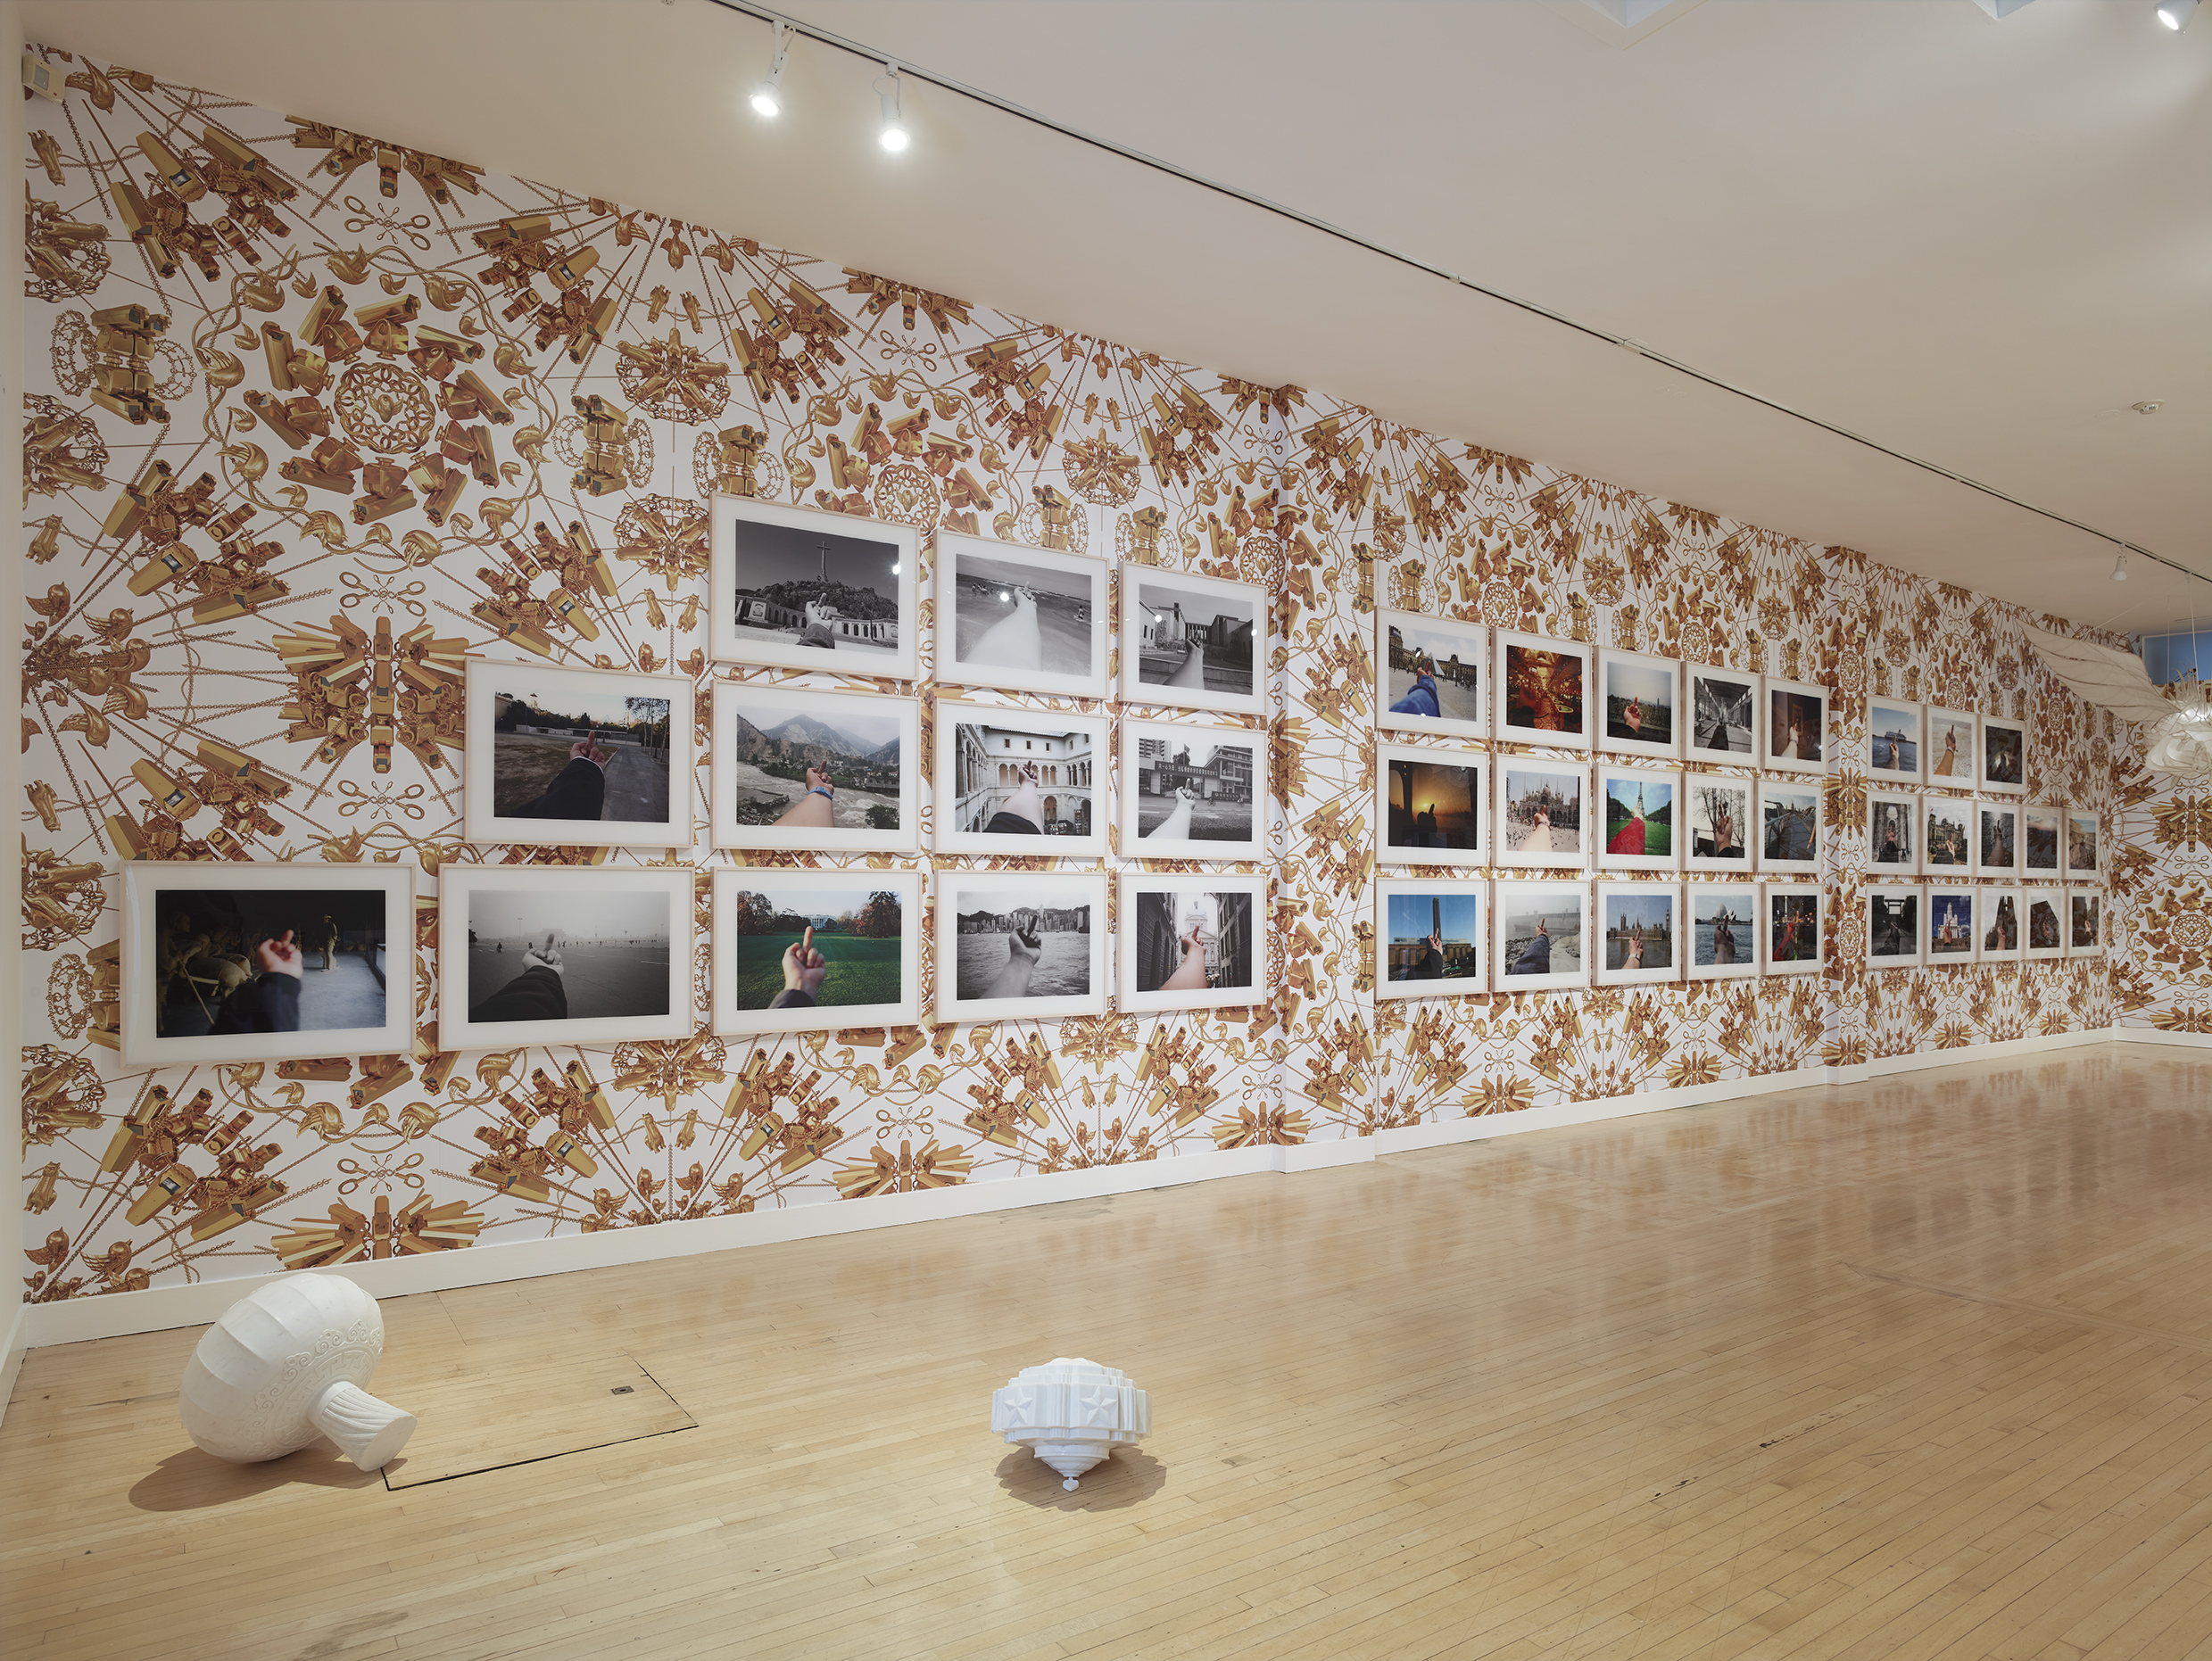 160508_HainesGallery_AiWeiWei_Overrated_RDH_031.jpg